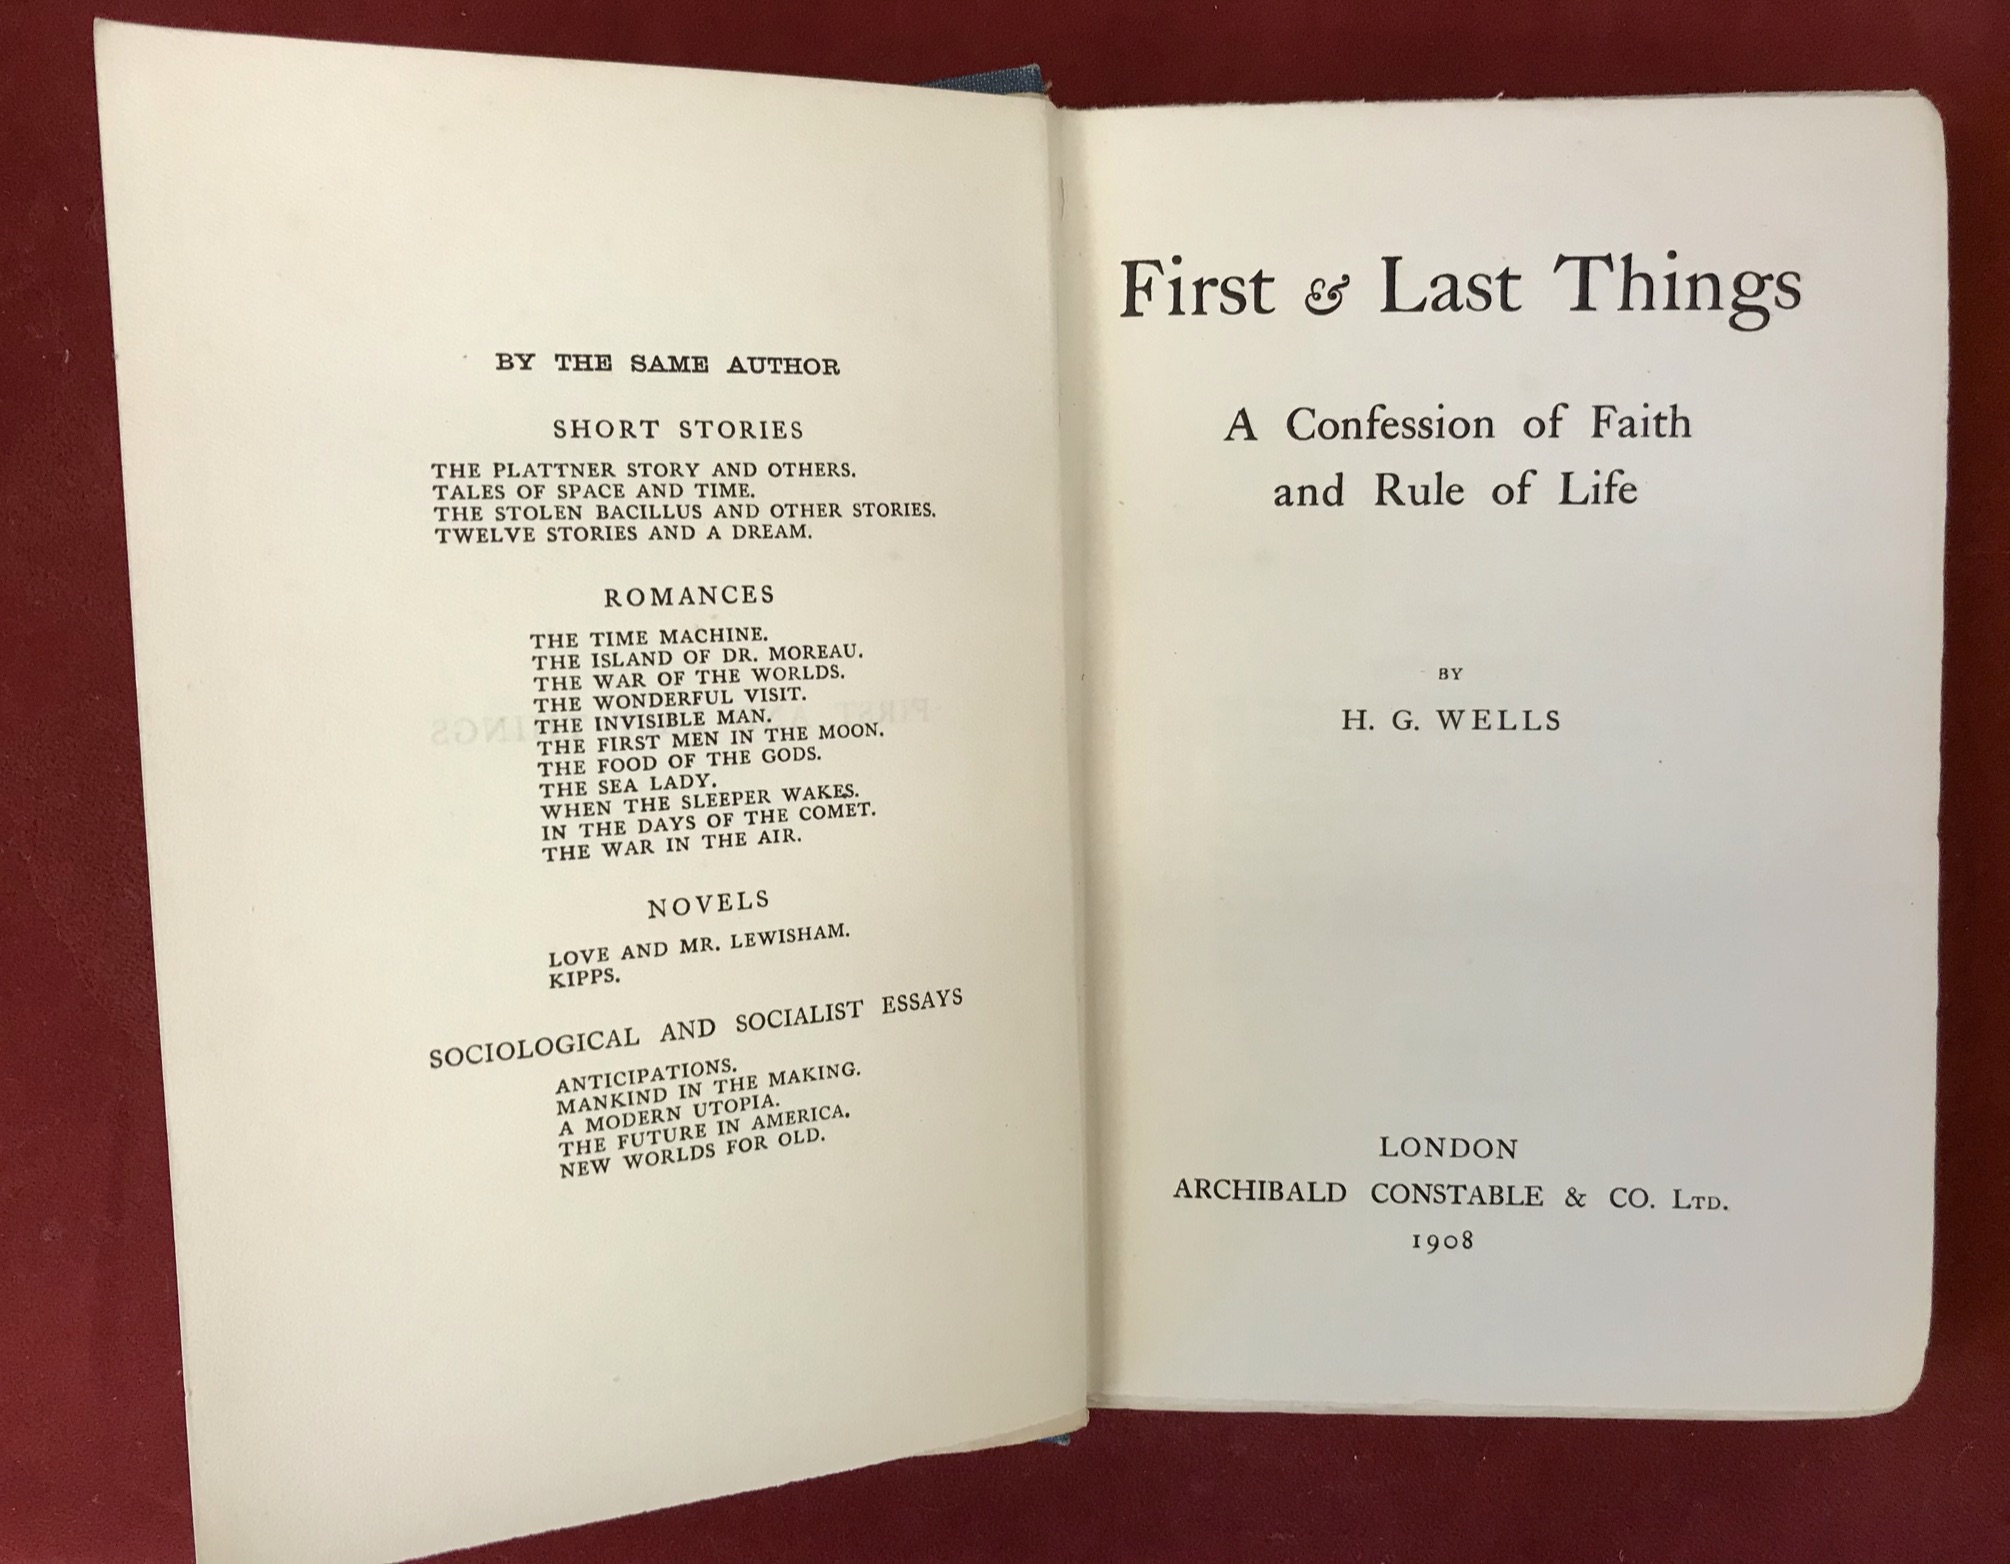 First and Last ThingsFirst edition 1908, no D/W, fair condition, also Tauchnitz 1909, poor - Image 4 of 4